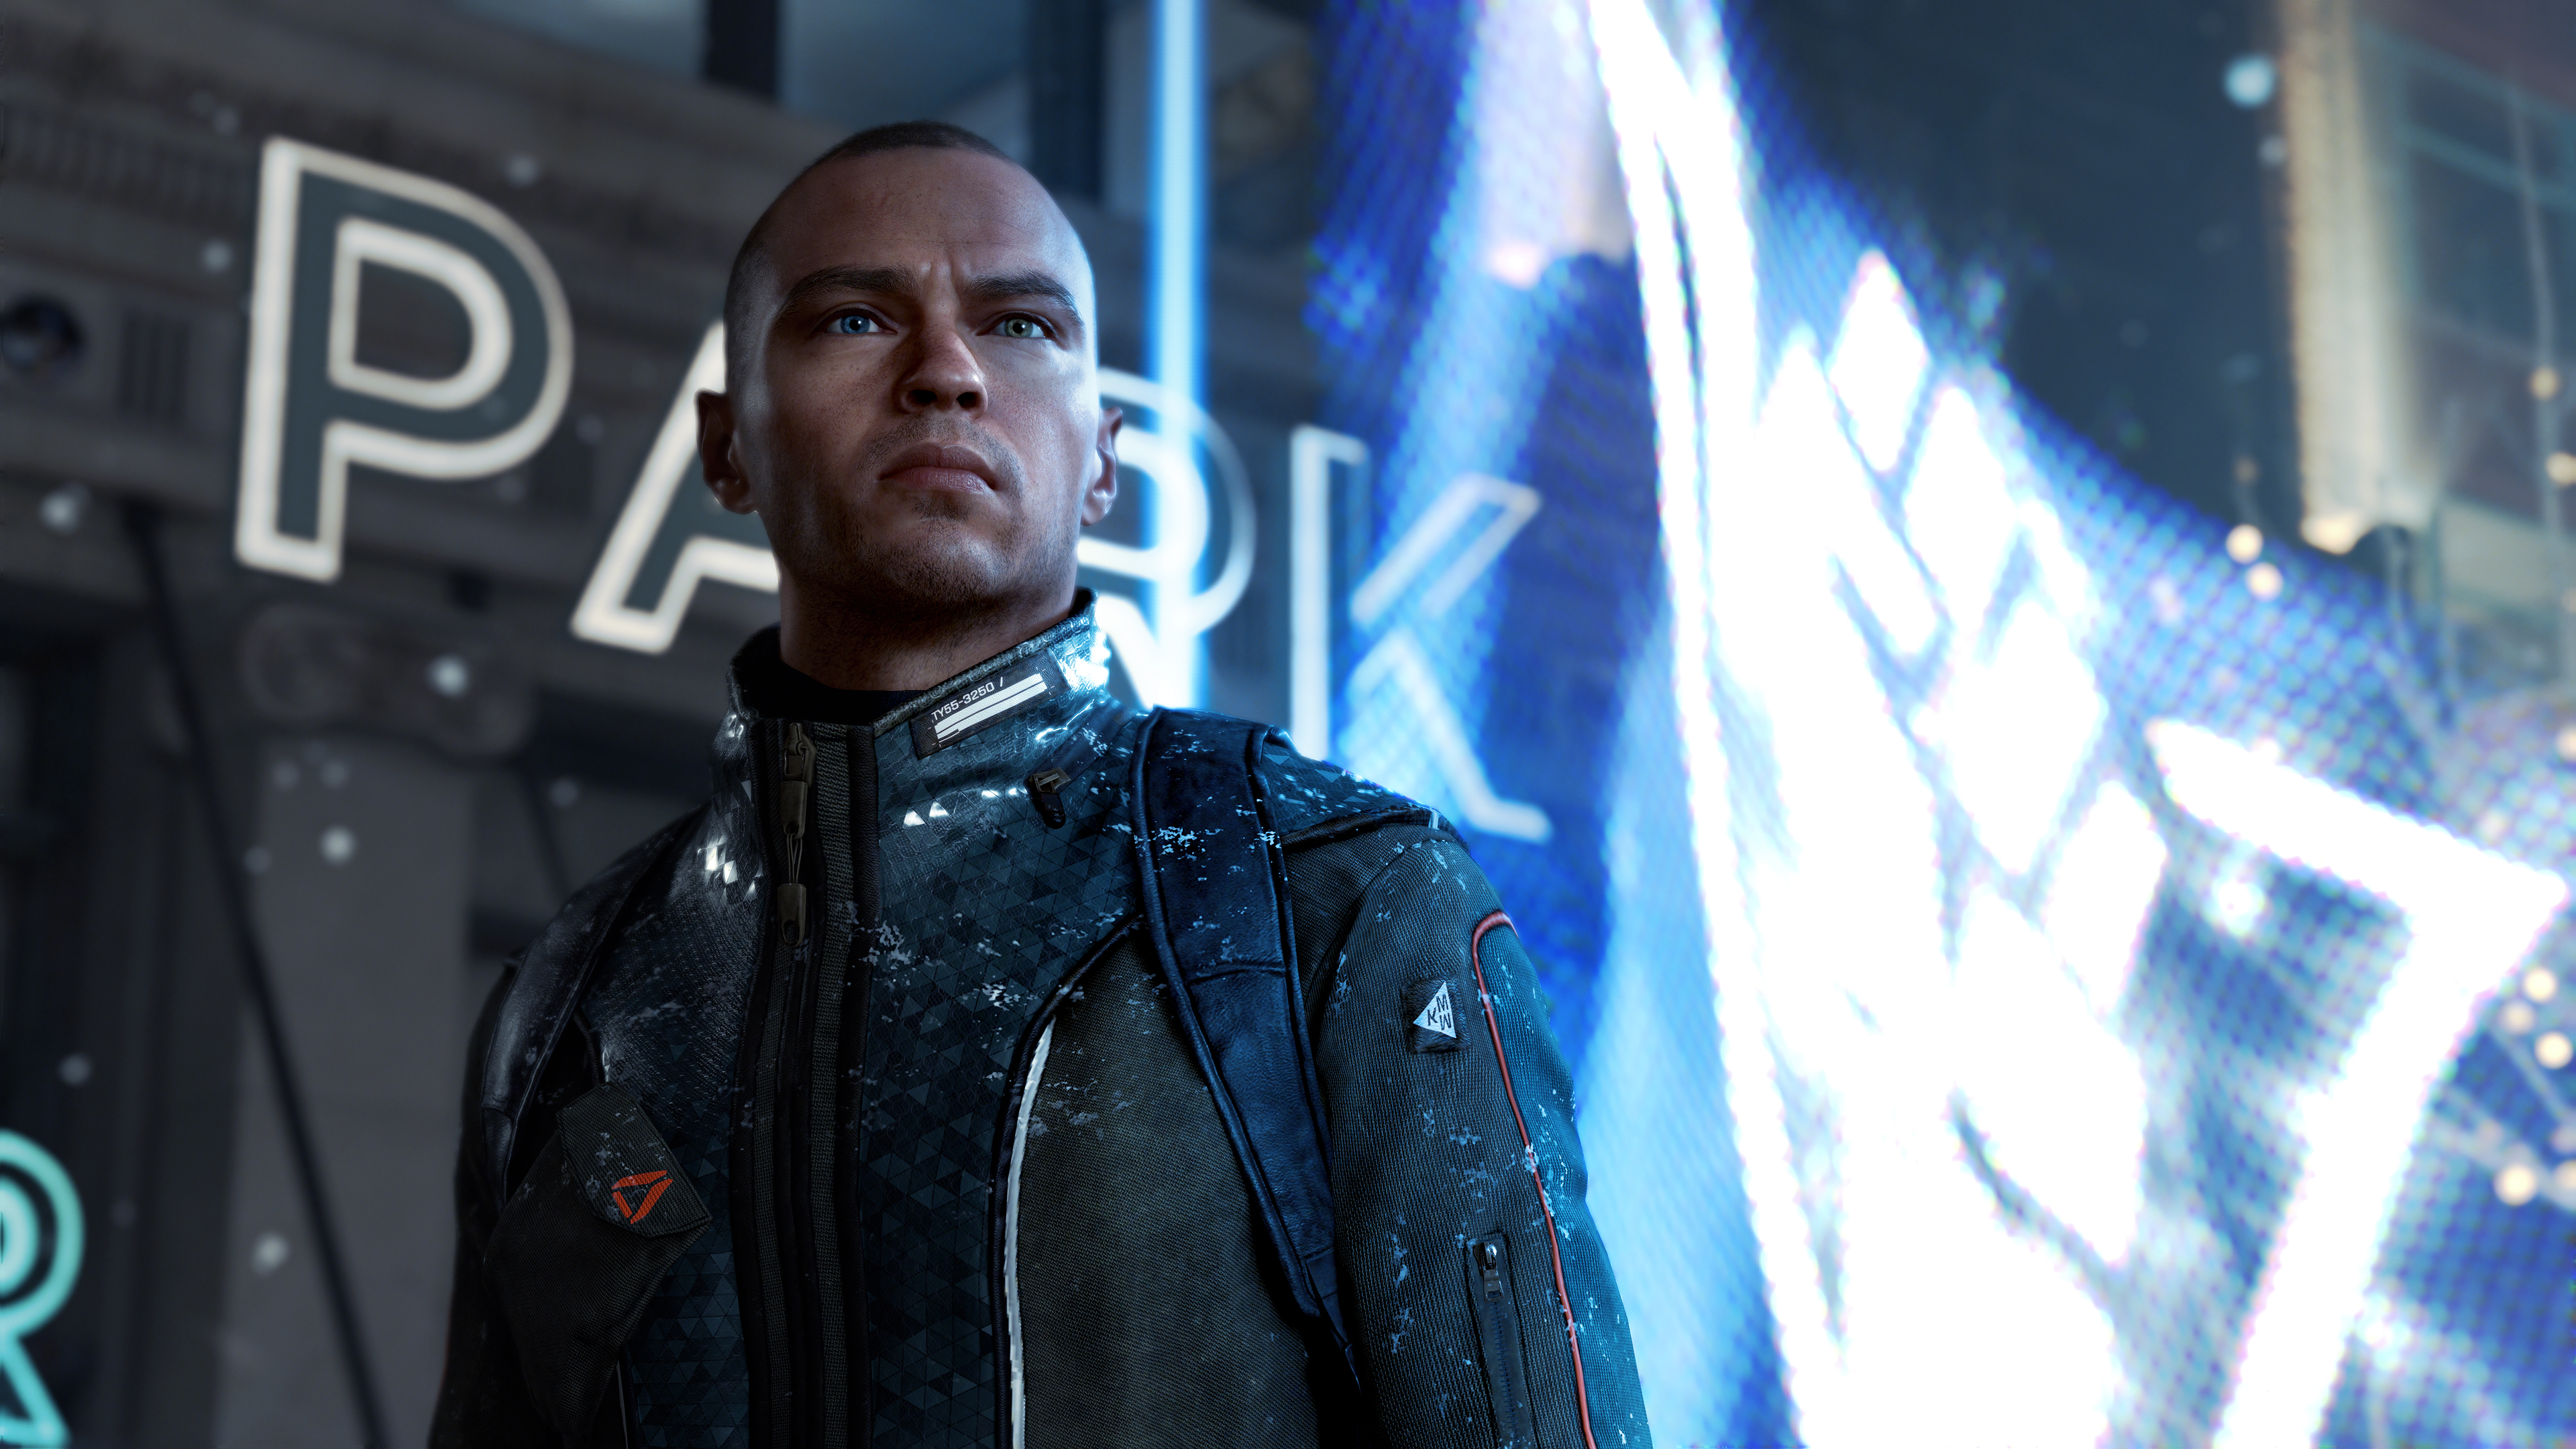 Markus Detroit Become Human 4k Hd Games 4k Wallpapers Images